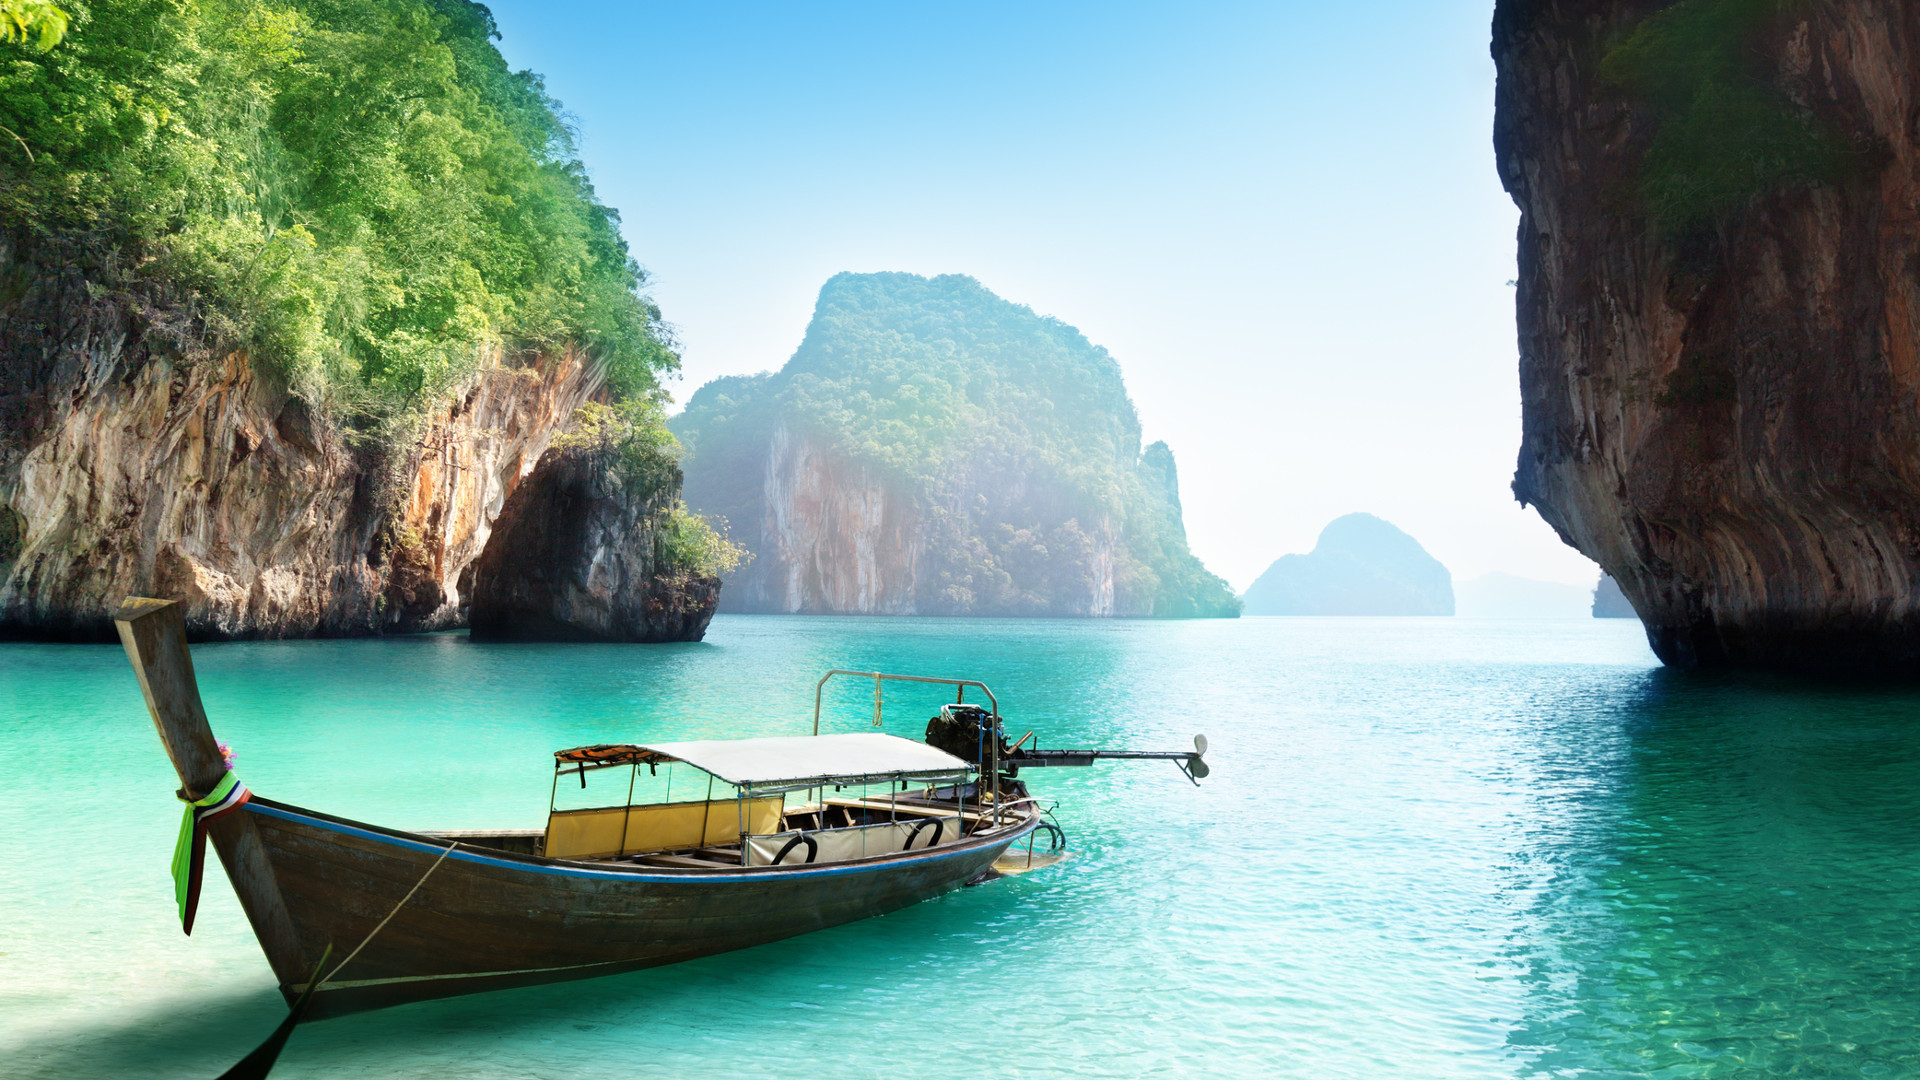 Custom Travel Planner Network-Thailand-Krabi Boat